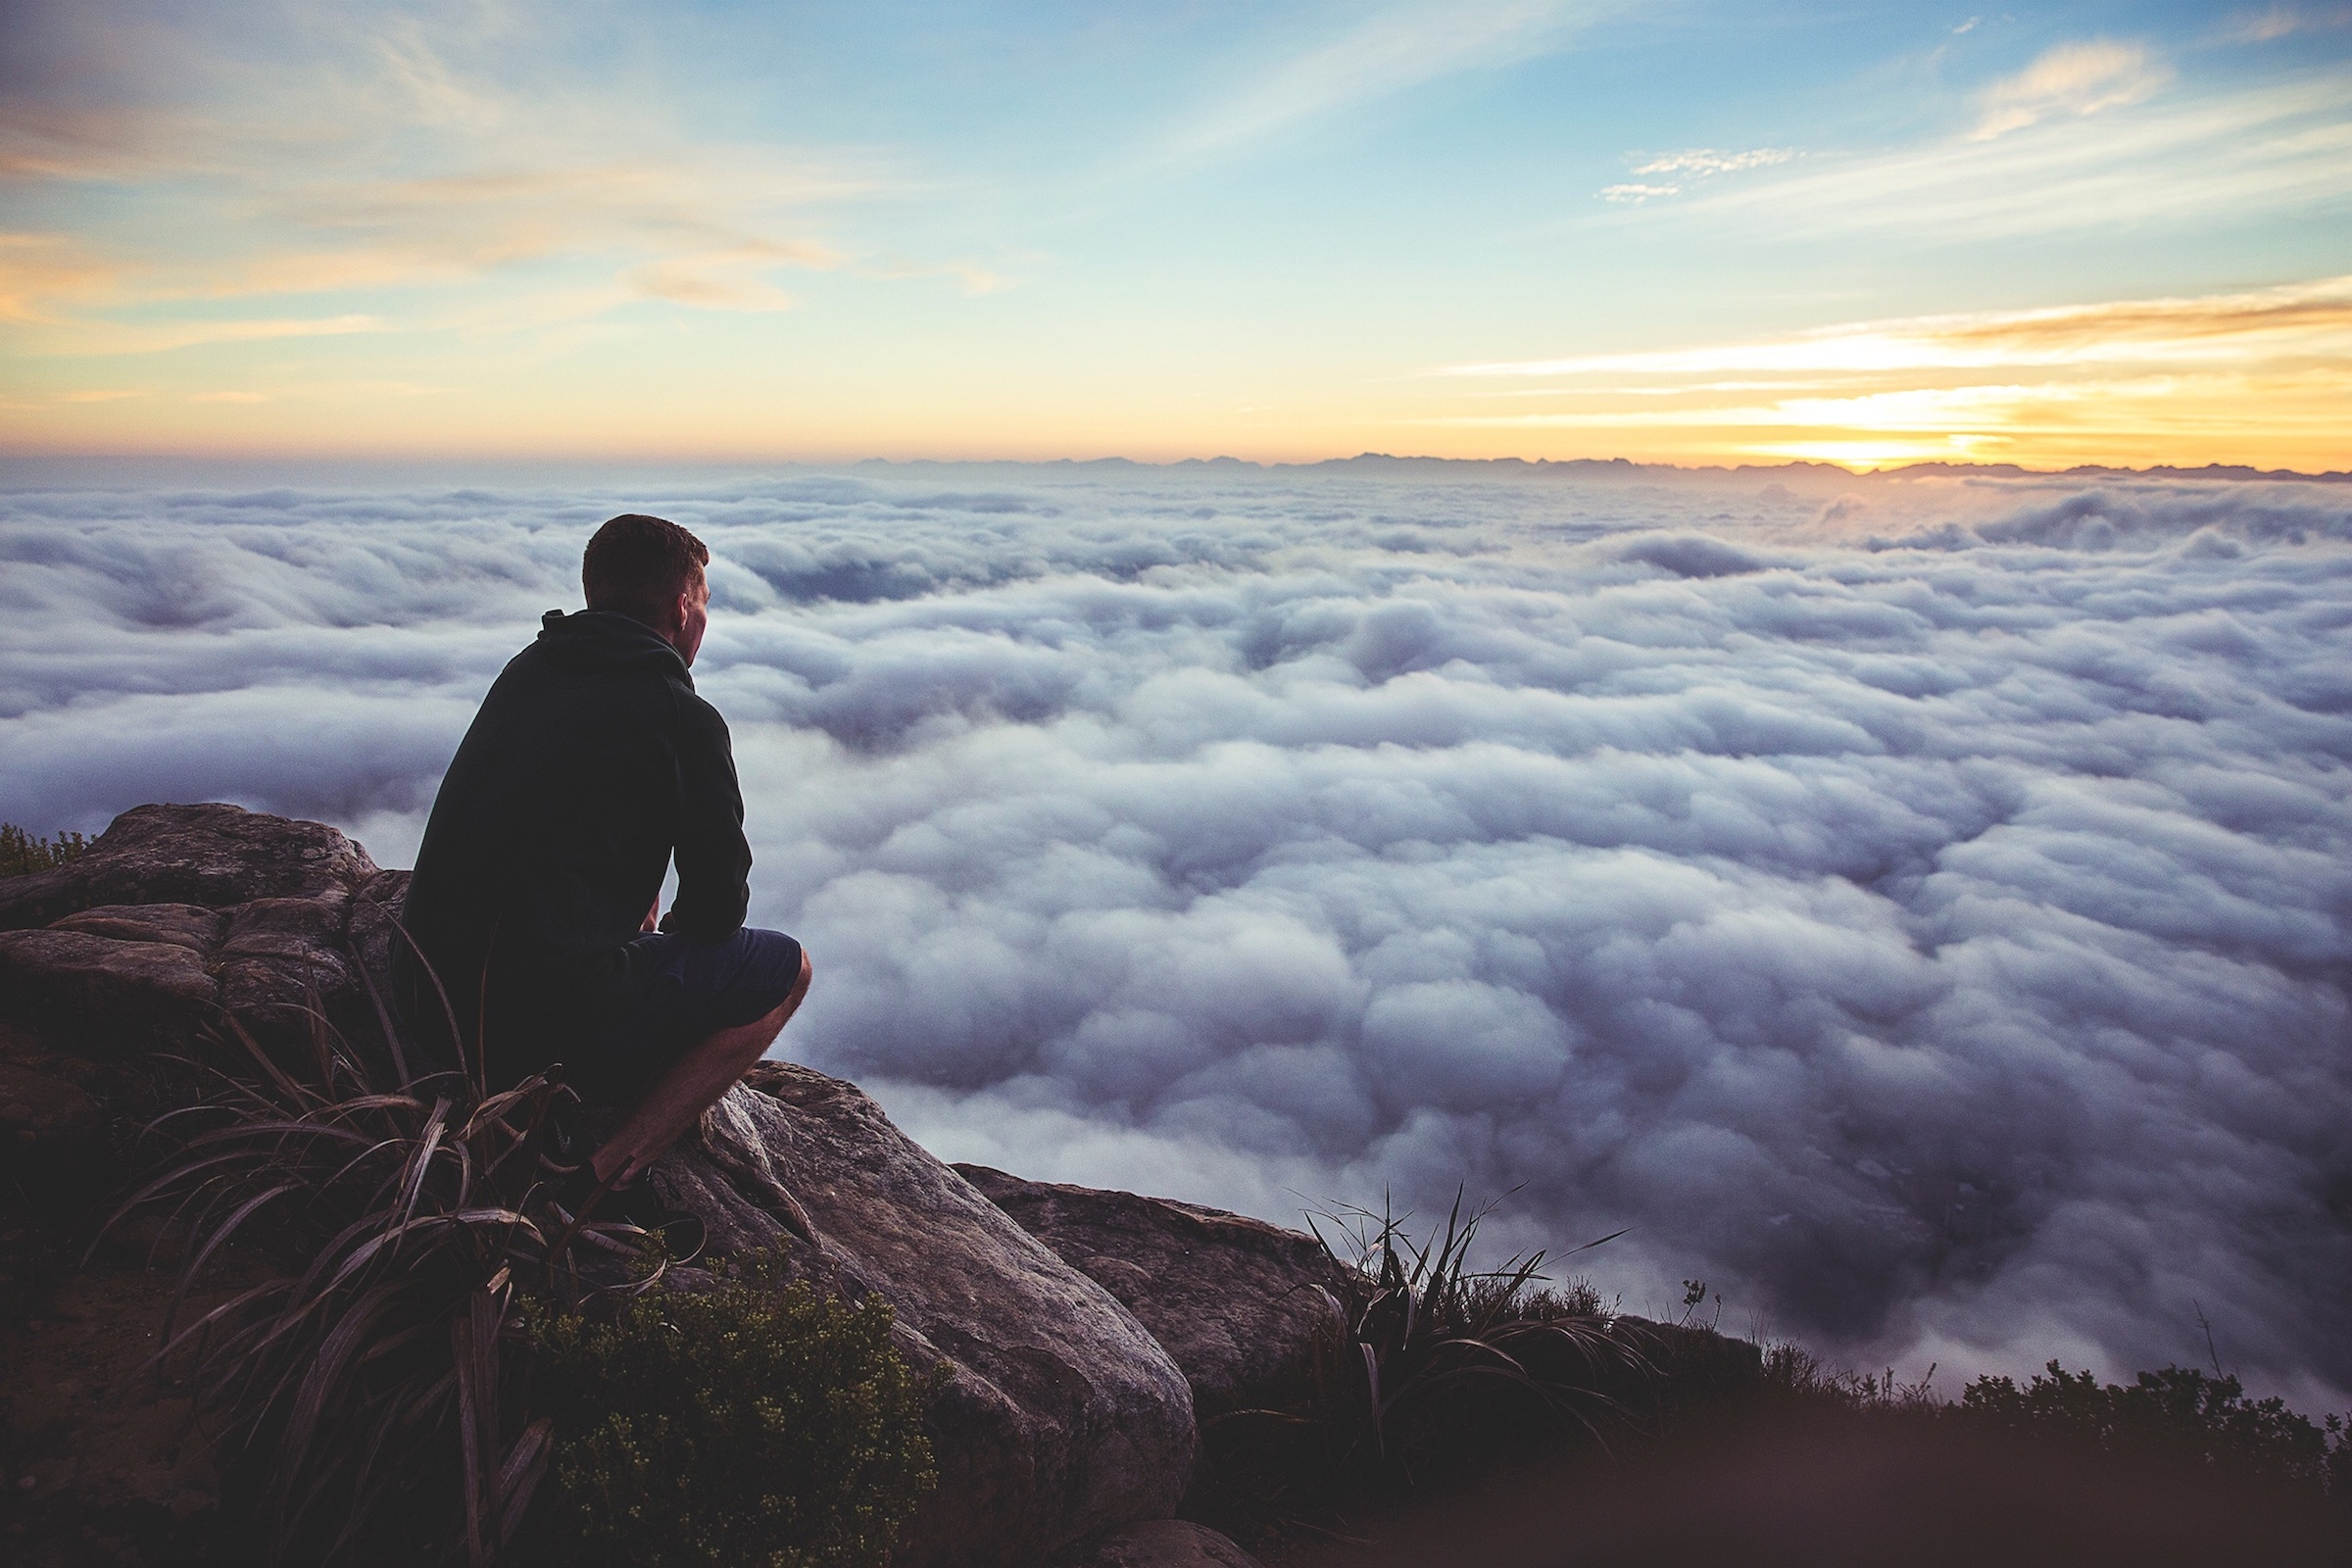 A man looking into the clouds on top of a mountain